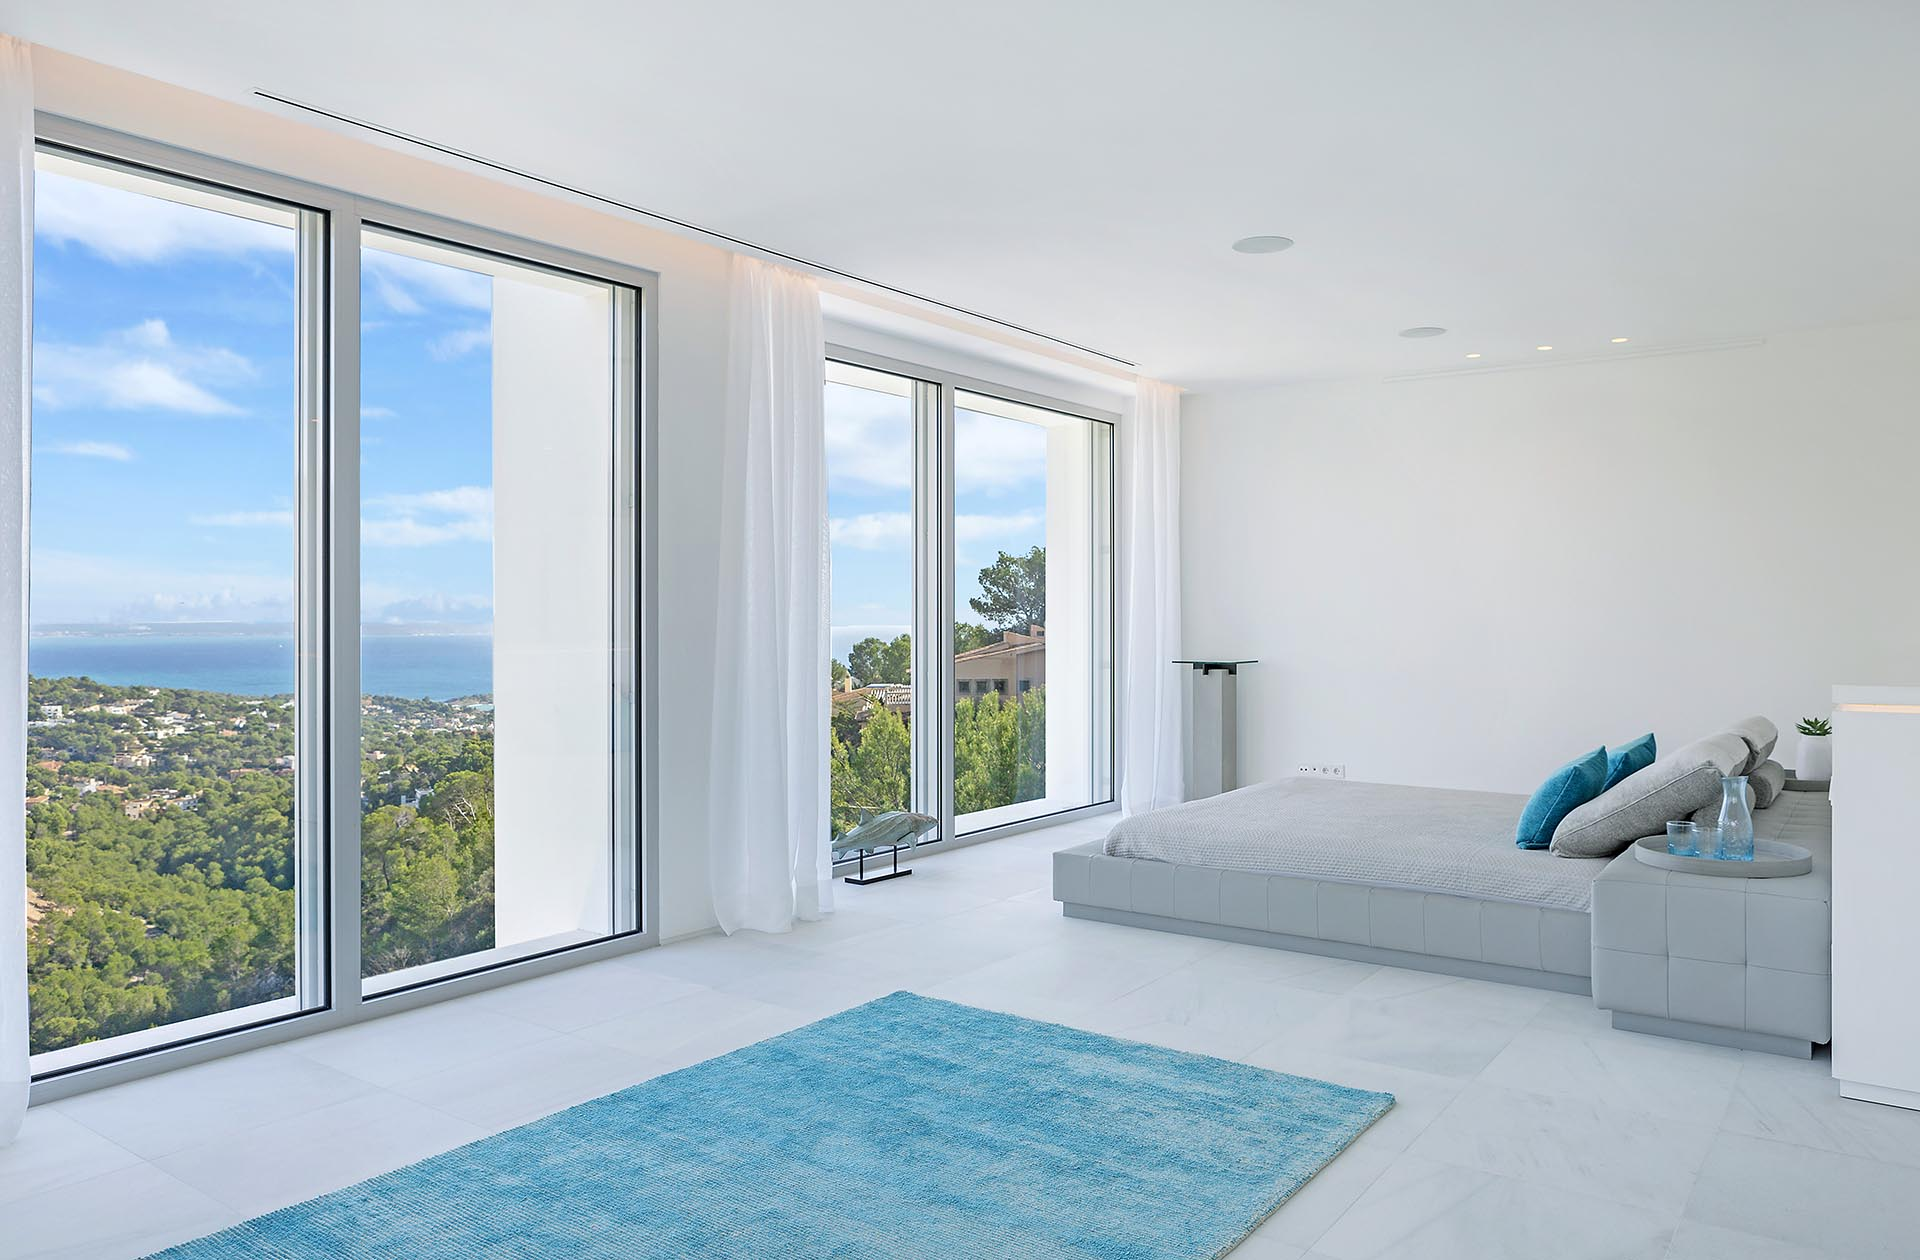 Beautiful modern villa in Costa den Blanes - Bedroom with a dream view